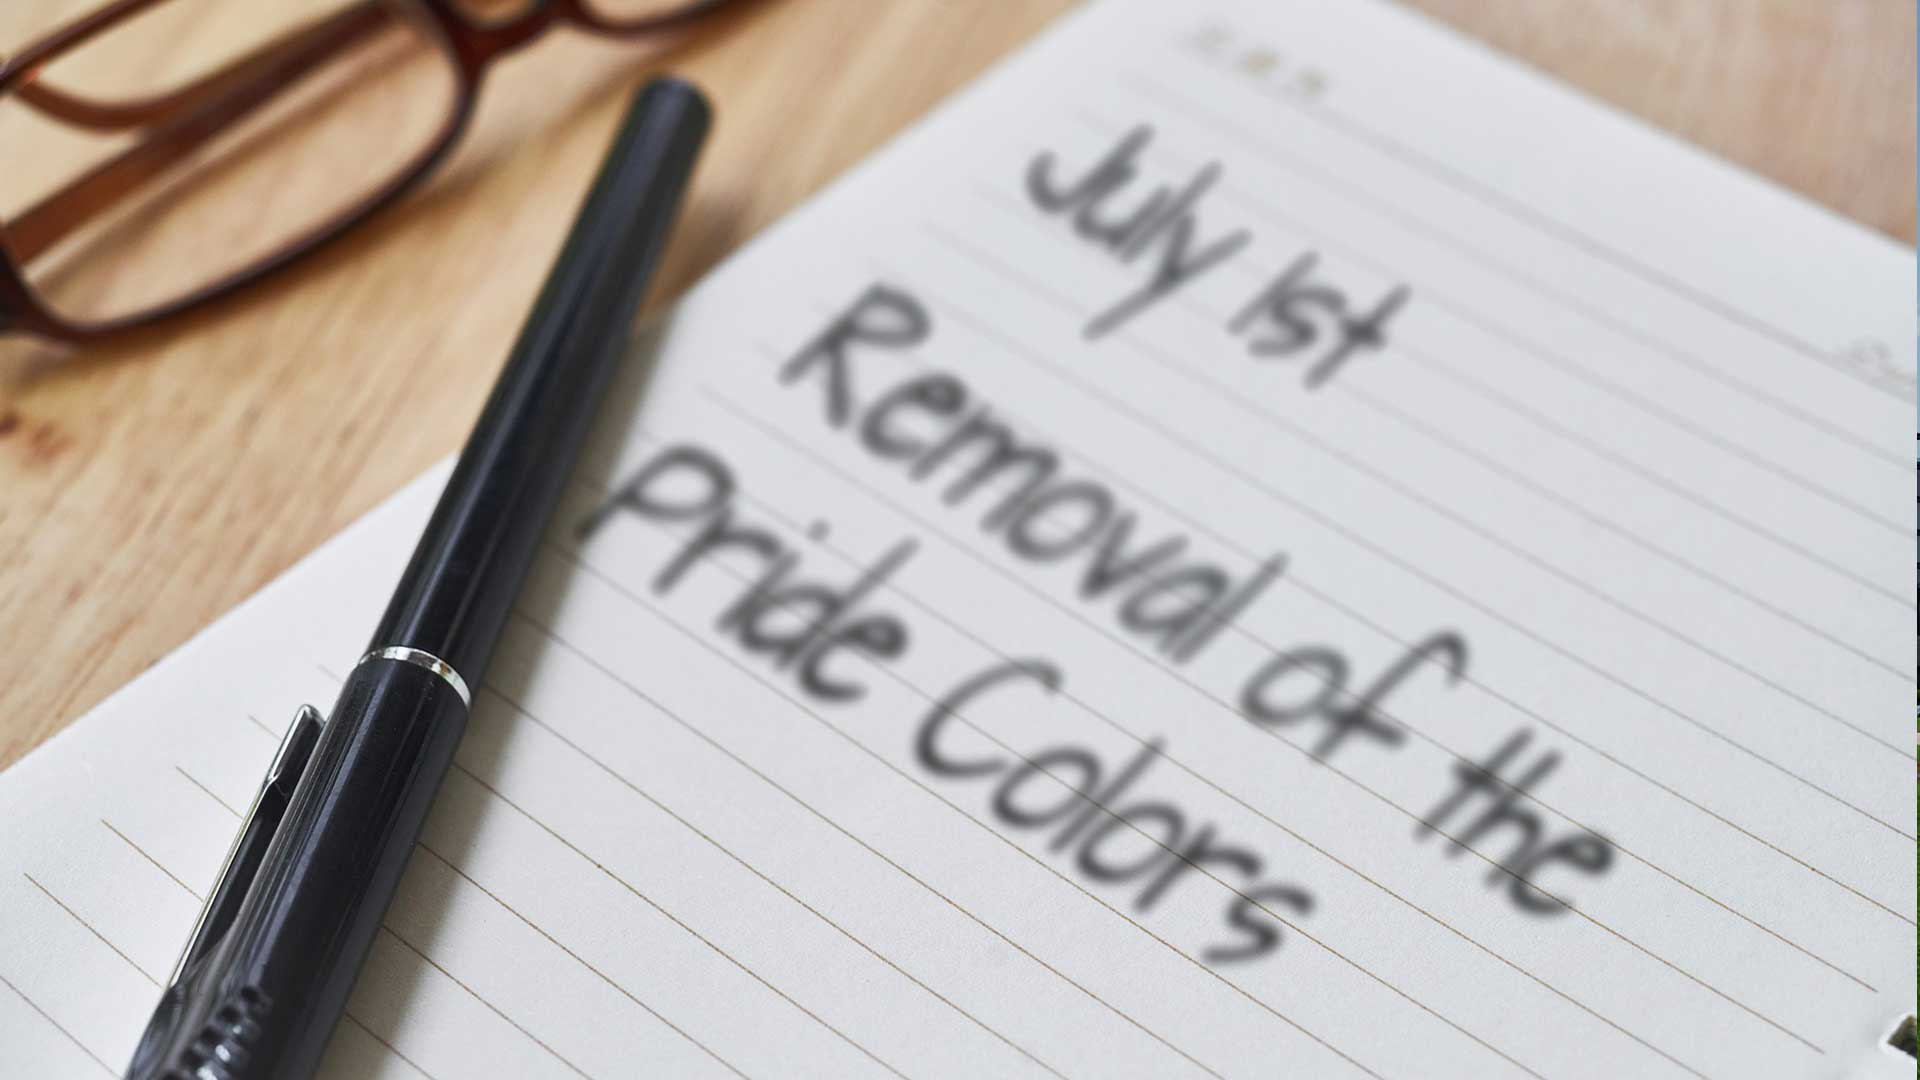 Corporation-Logos-Gear-Up-for-Annual-Removal-of-the-Pride-Colors-on-July-1st.jpg